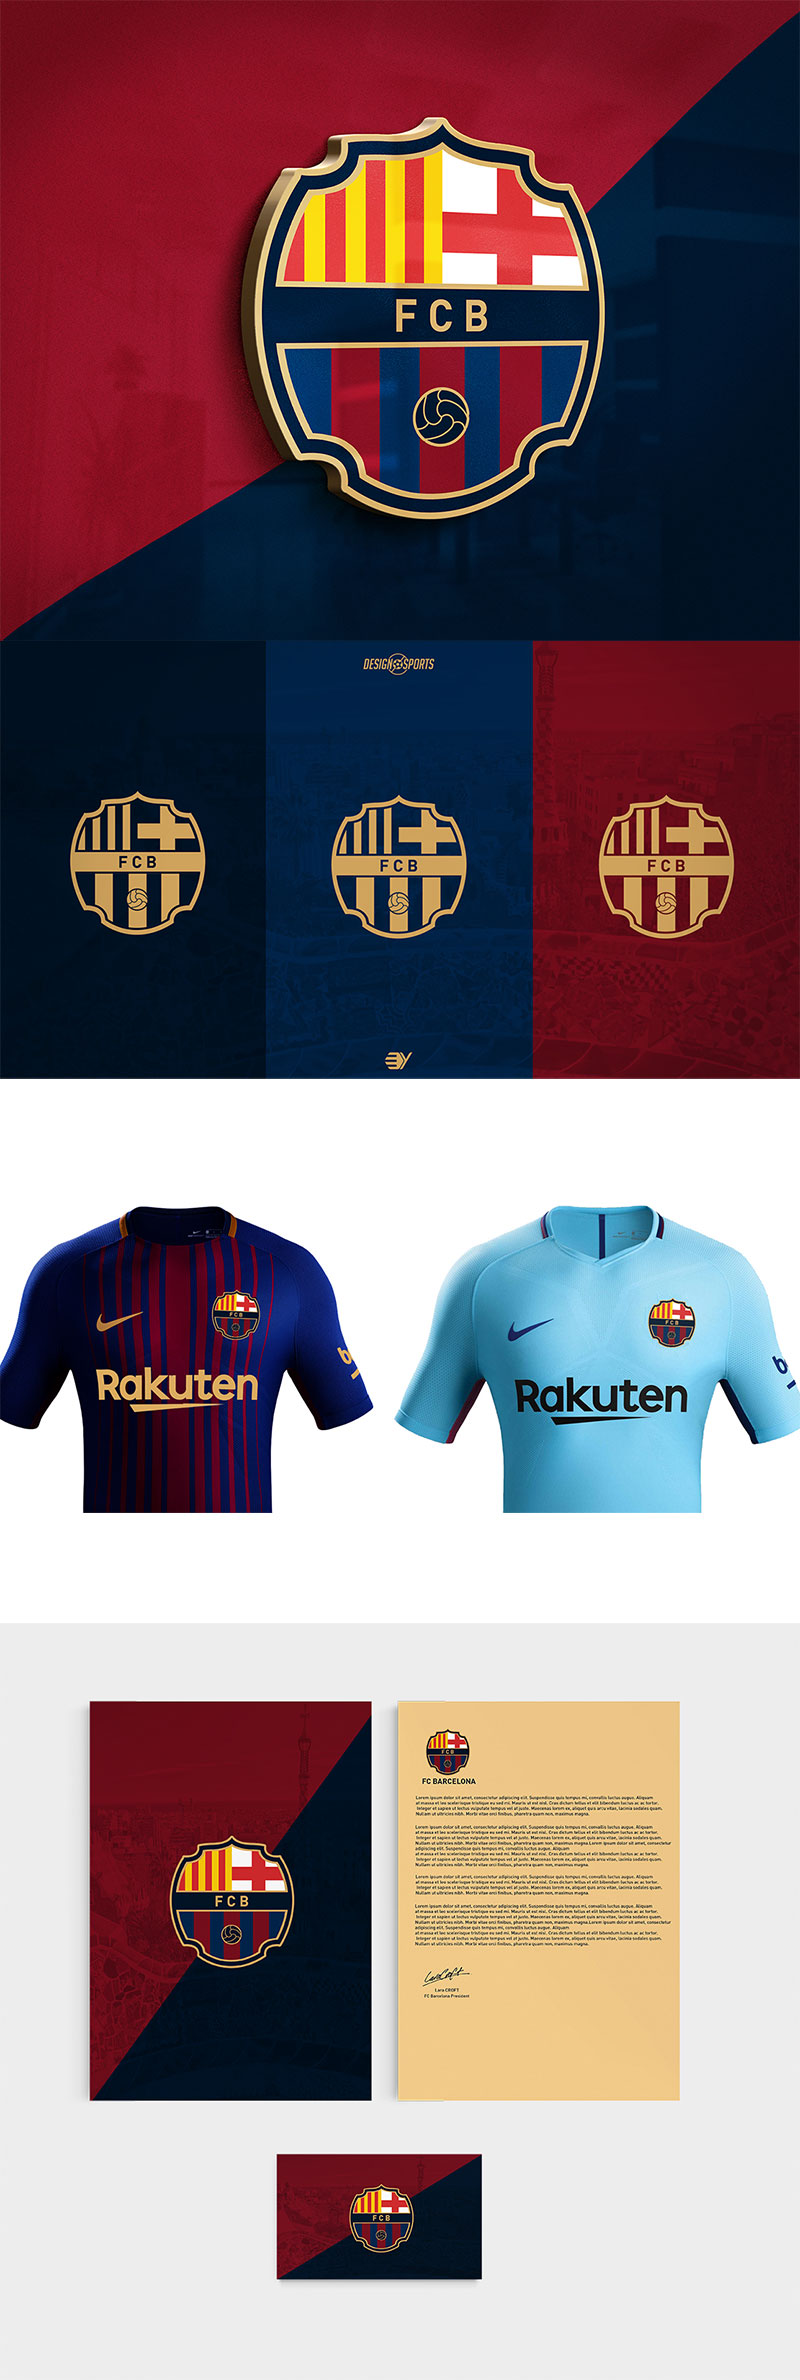 Football Club Brand Designs: FC Barcelona Rebranding by Evrim Yilmaz